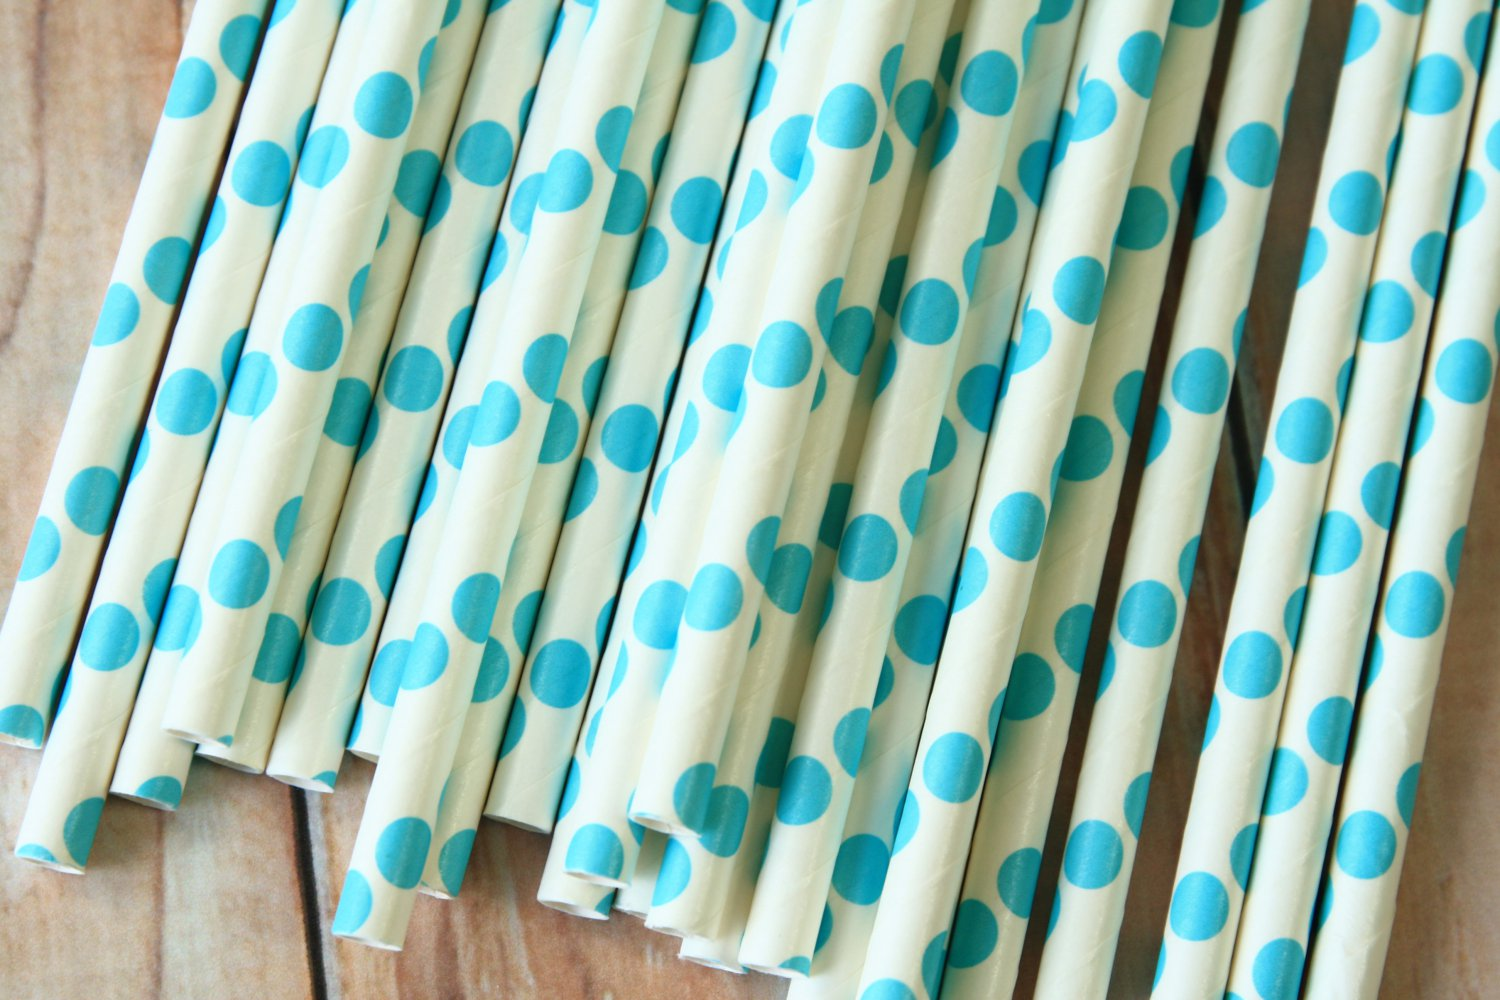 Sky Blue Big Dots paper straws